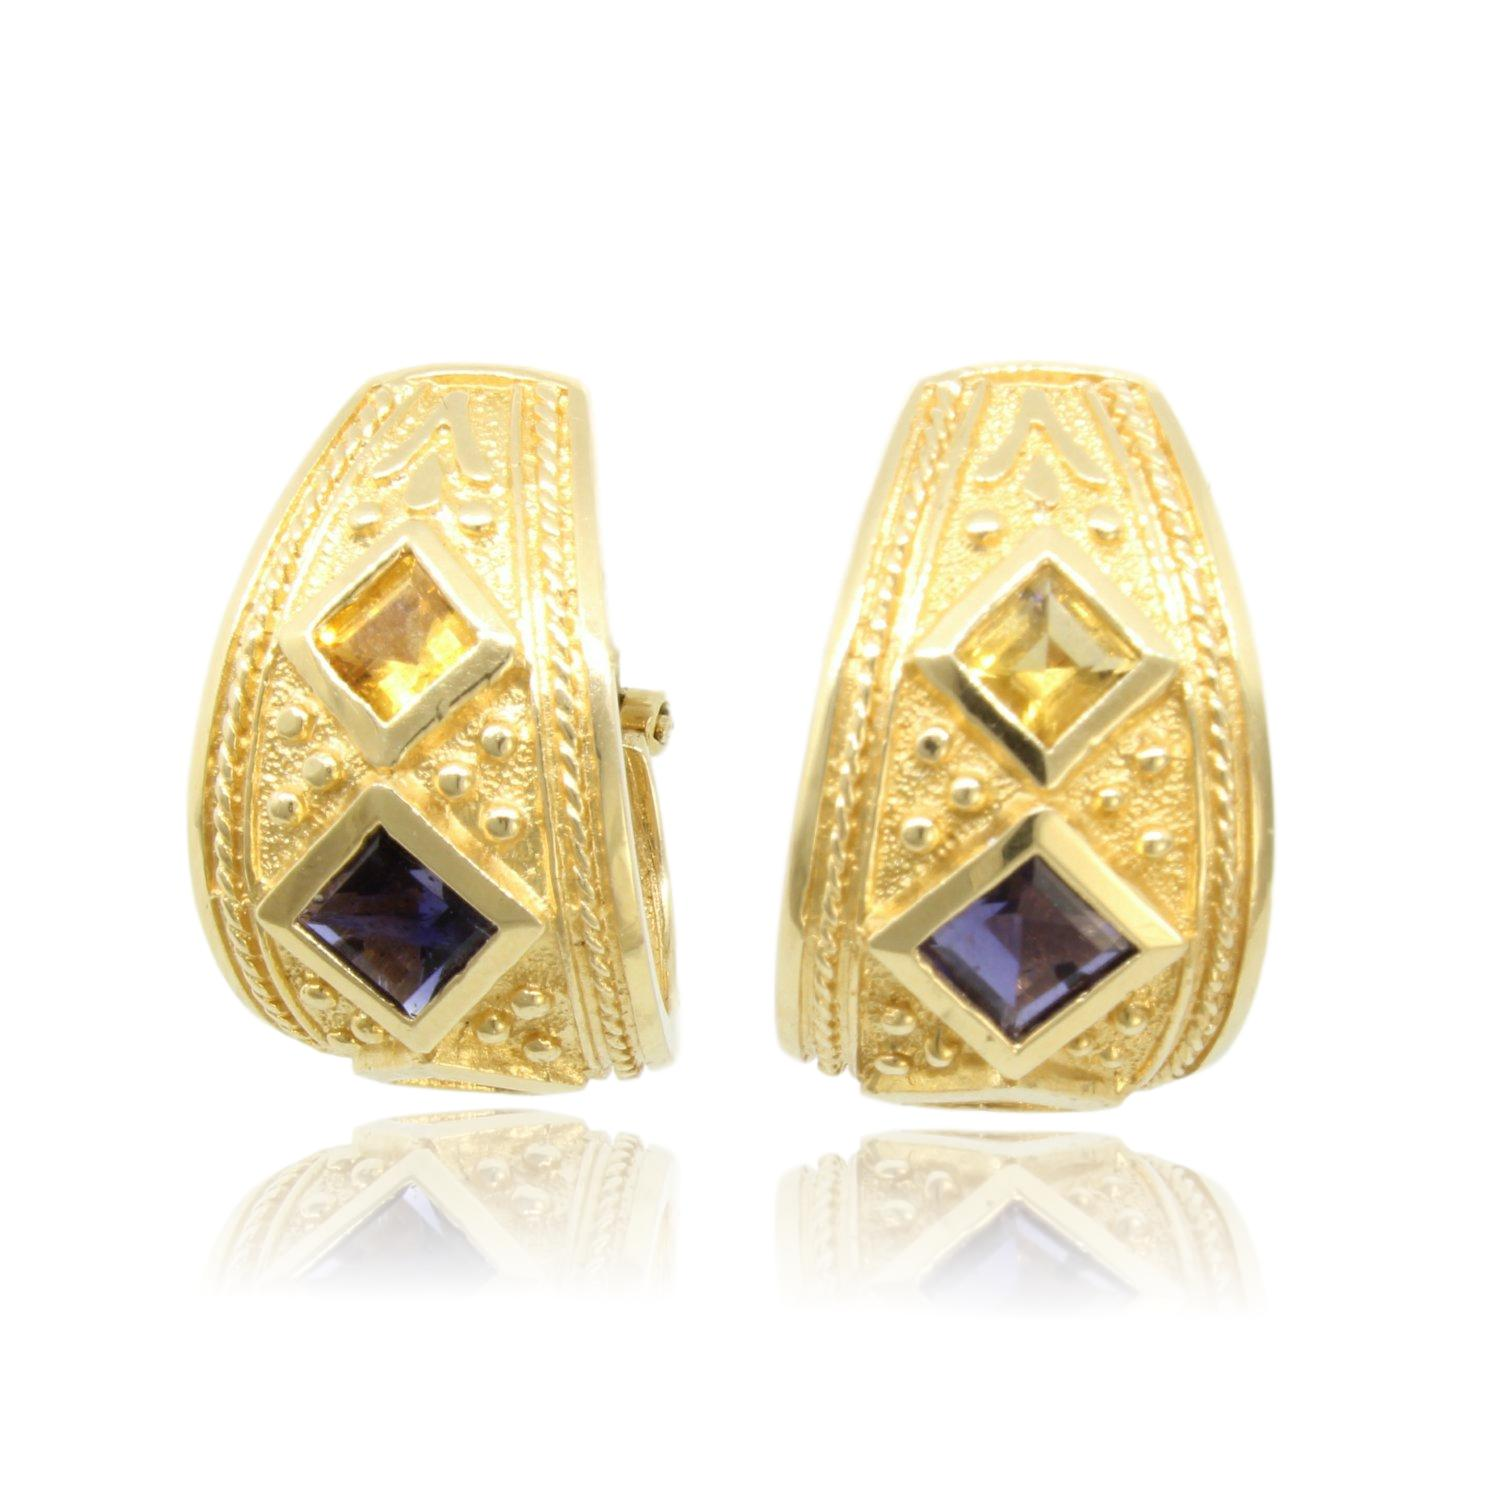 Arts-Elegance-14K-Gold-Iolite--Citrine-Etruscan-Earrings_80313A.jpg